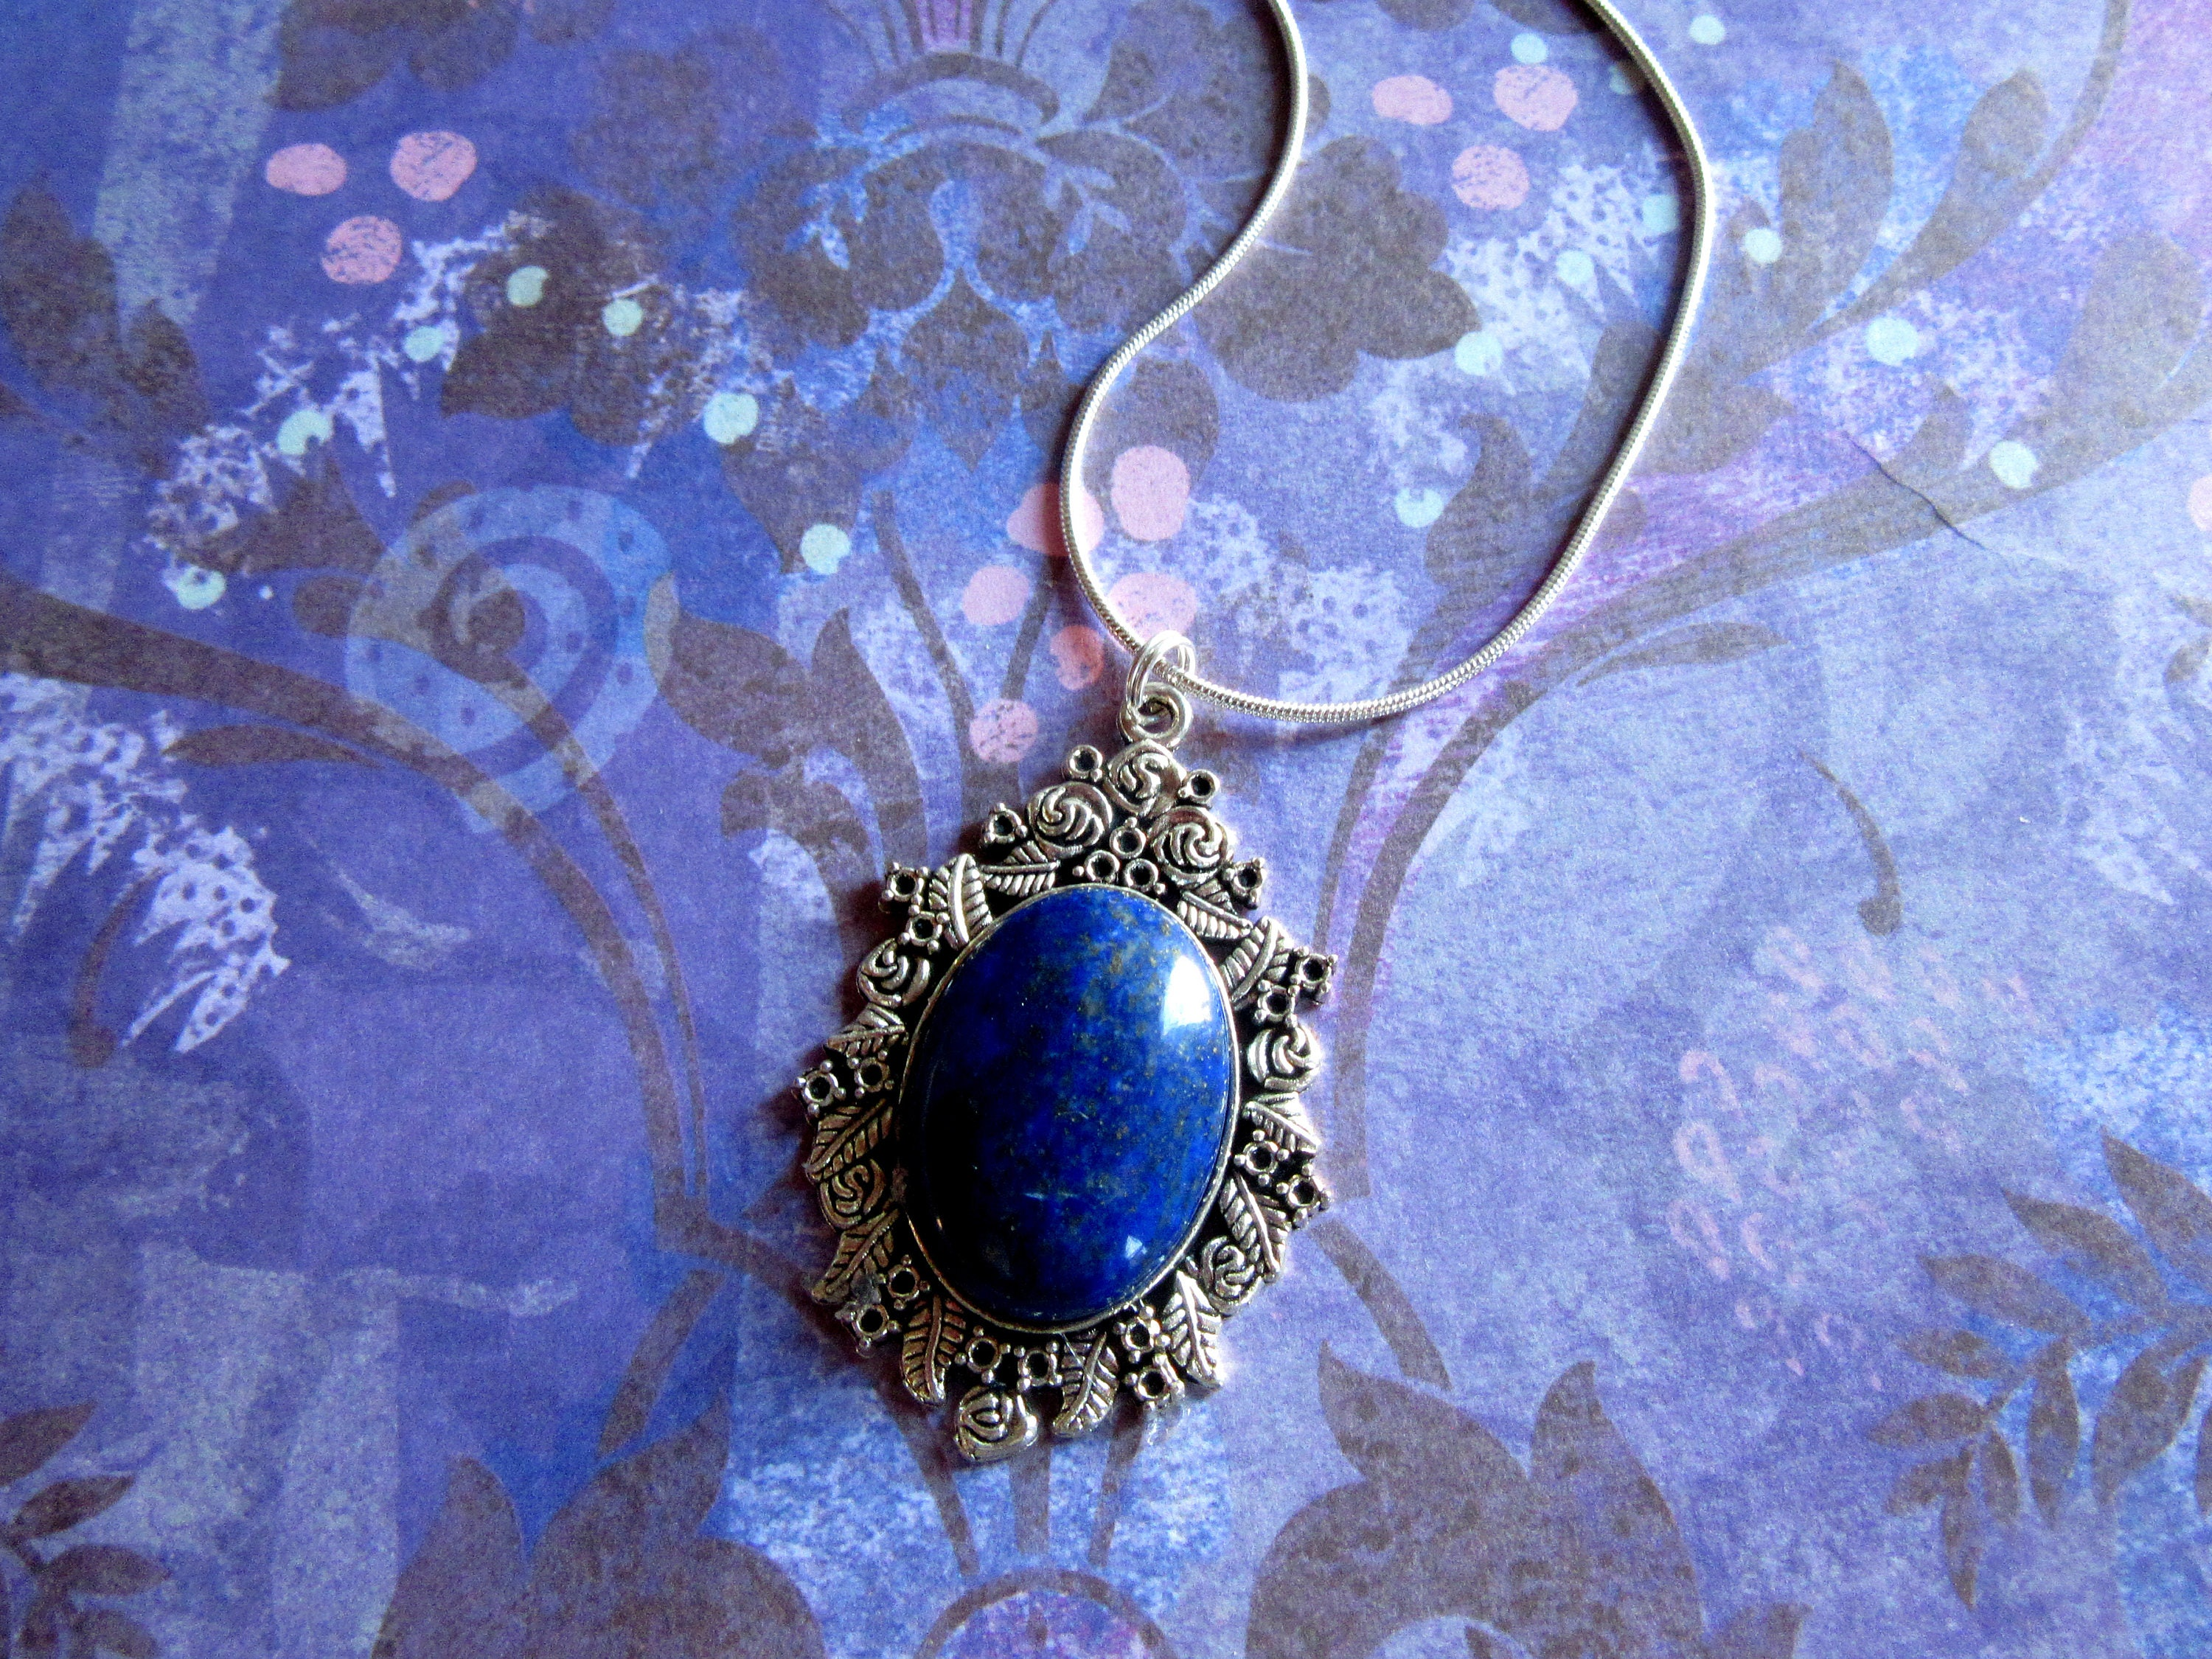 by large pomellato necklace pendant operandi blue ritratto lazuli moda lapis